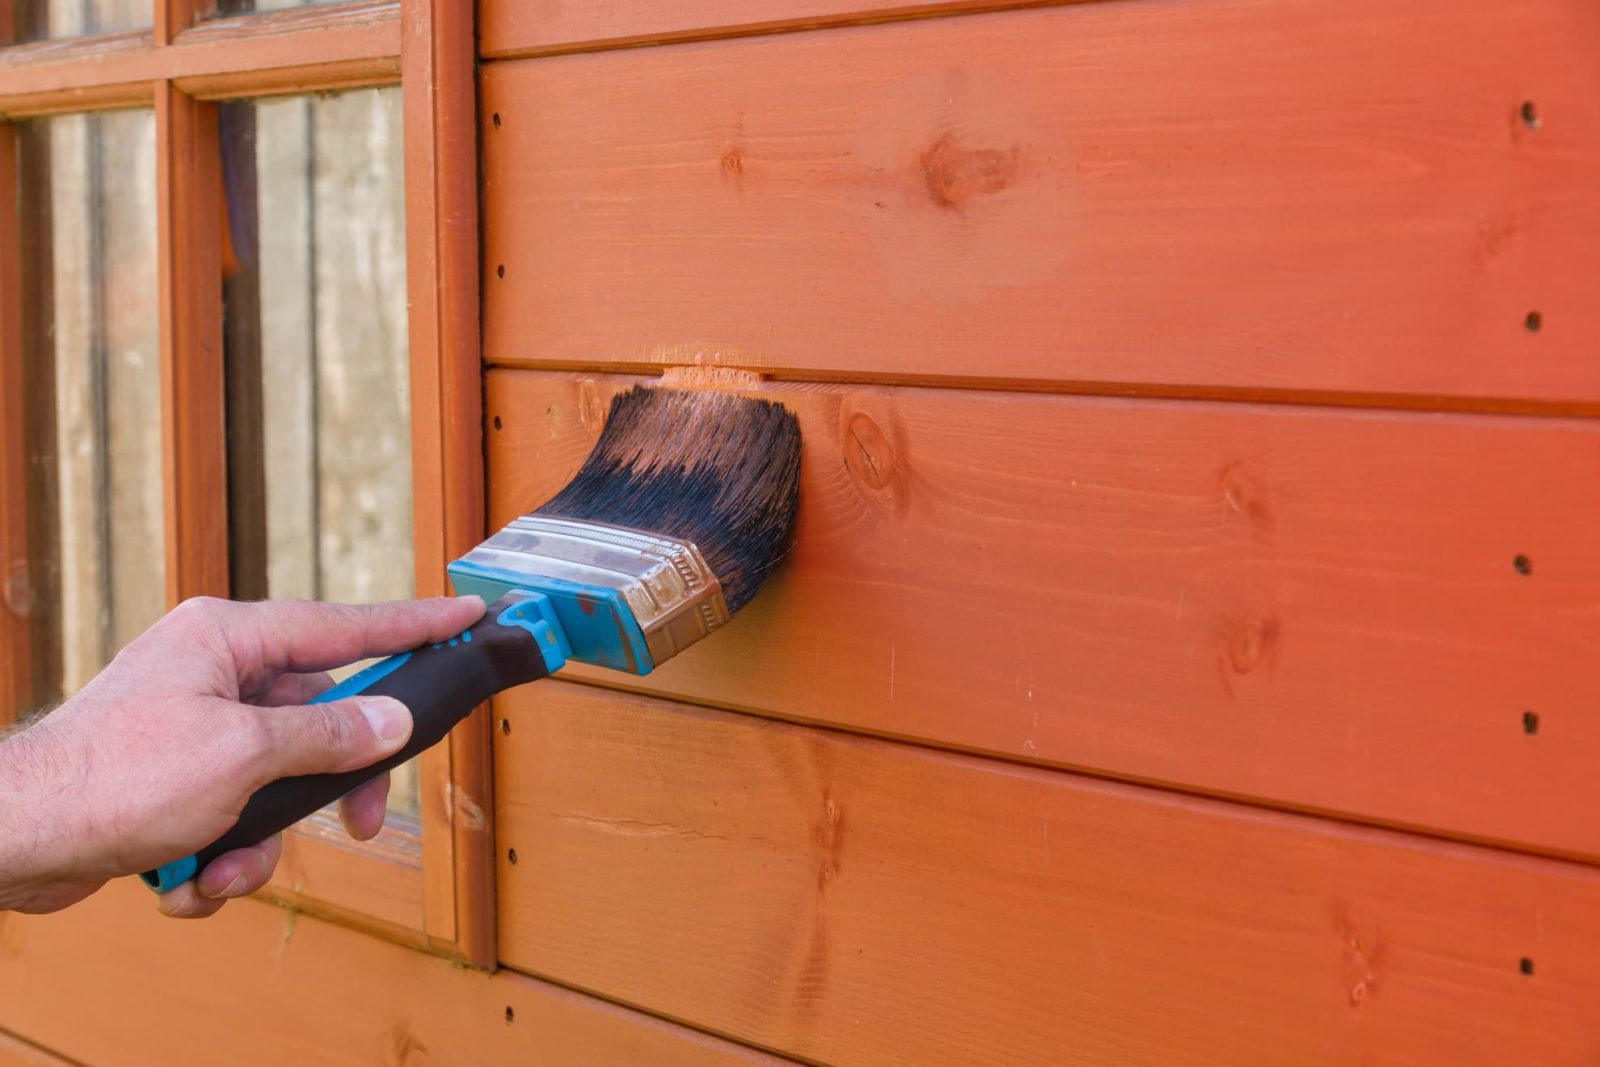 A wooden shed being painted in a red colour